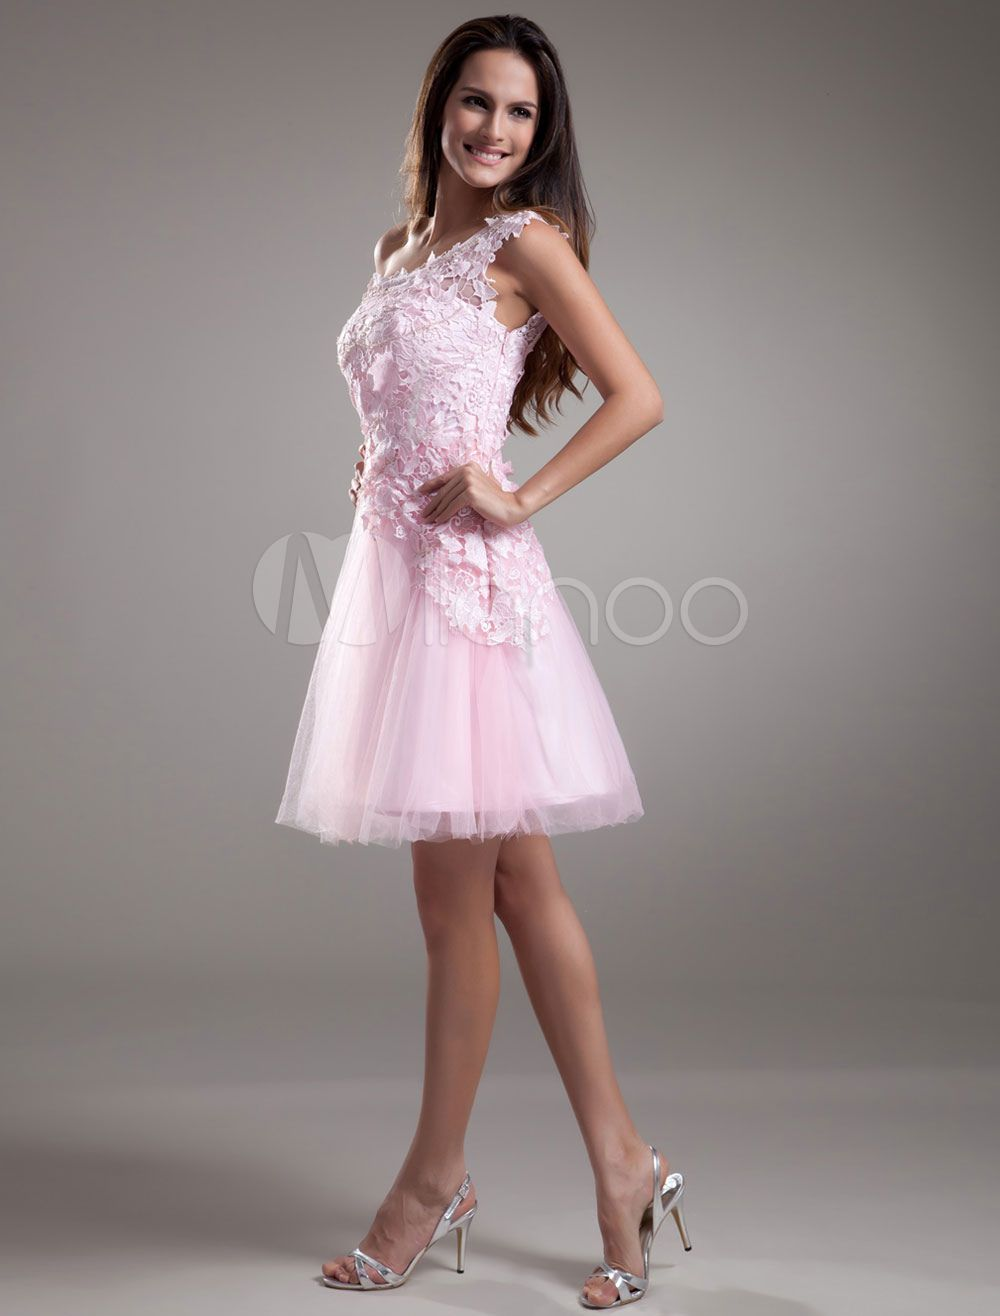 Lace cocktail dress one shoulder short prom dress pink tulle party